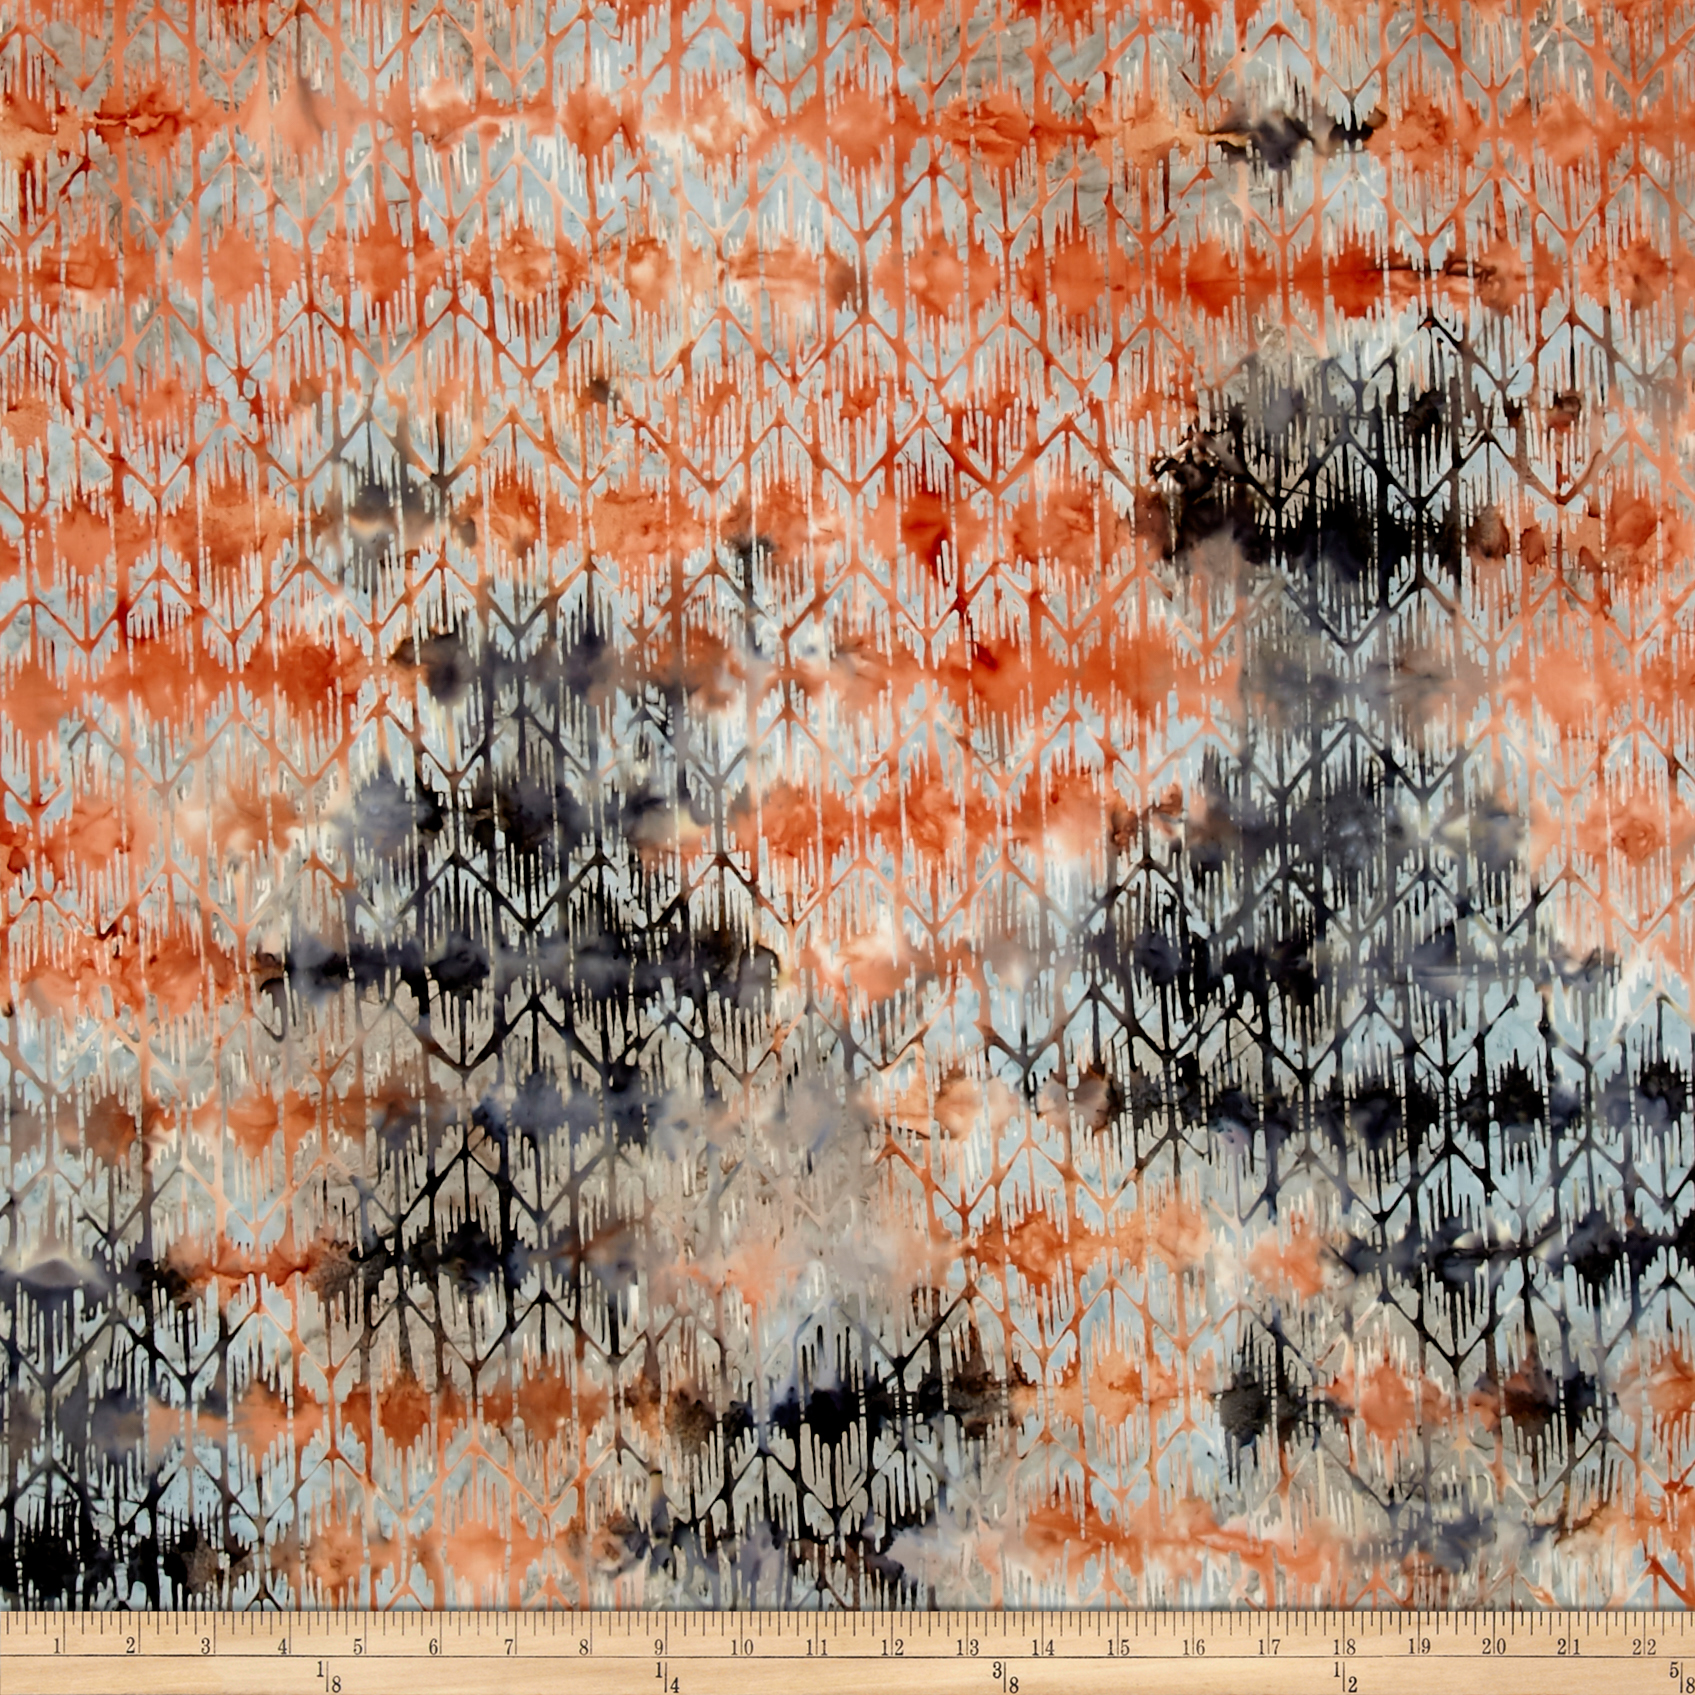 Timeless Treasures Tonga Batik Copper Weeping Willow Carbon Fabric by Timeless Treasures in USA